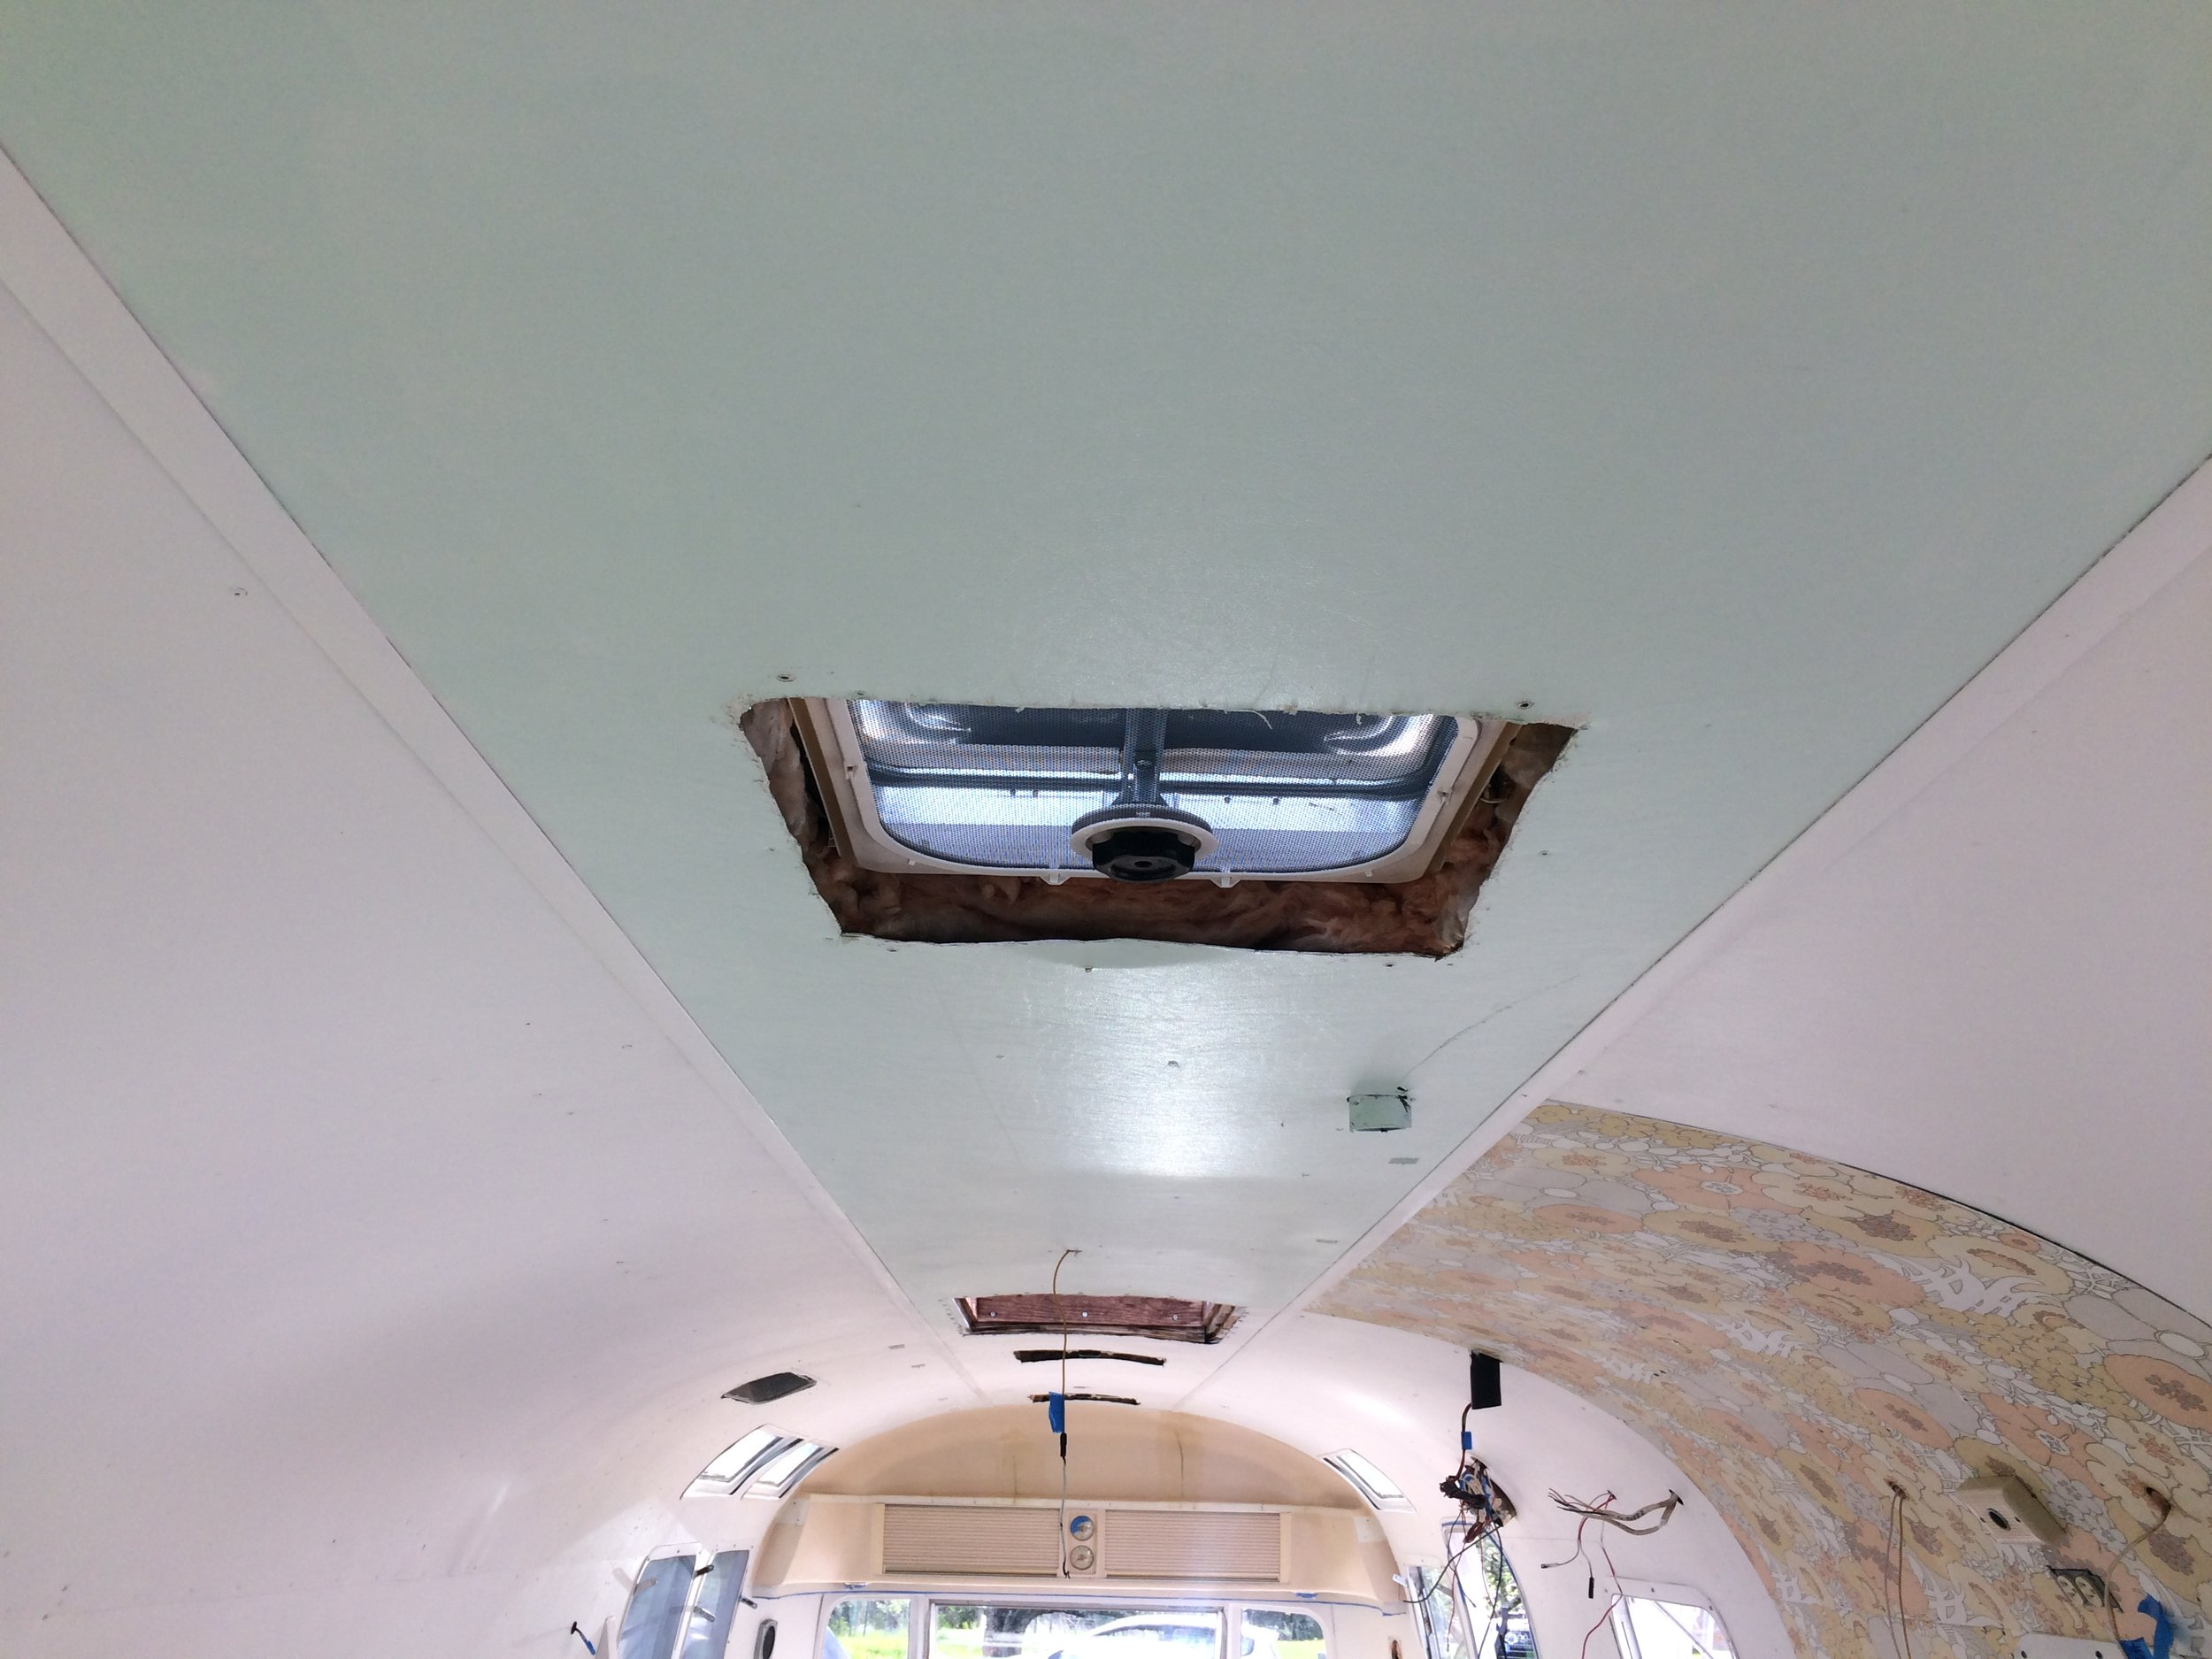 The new ceiling, with new, operational, and DRY vents.